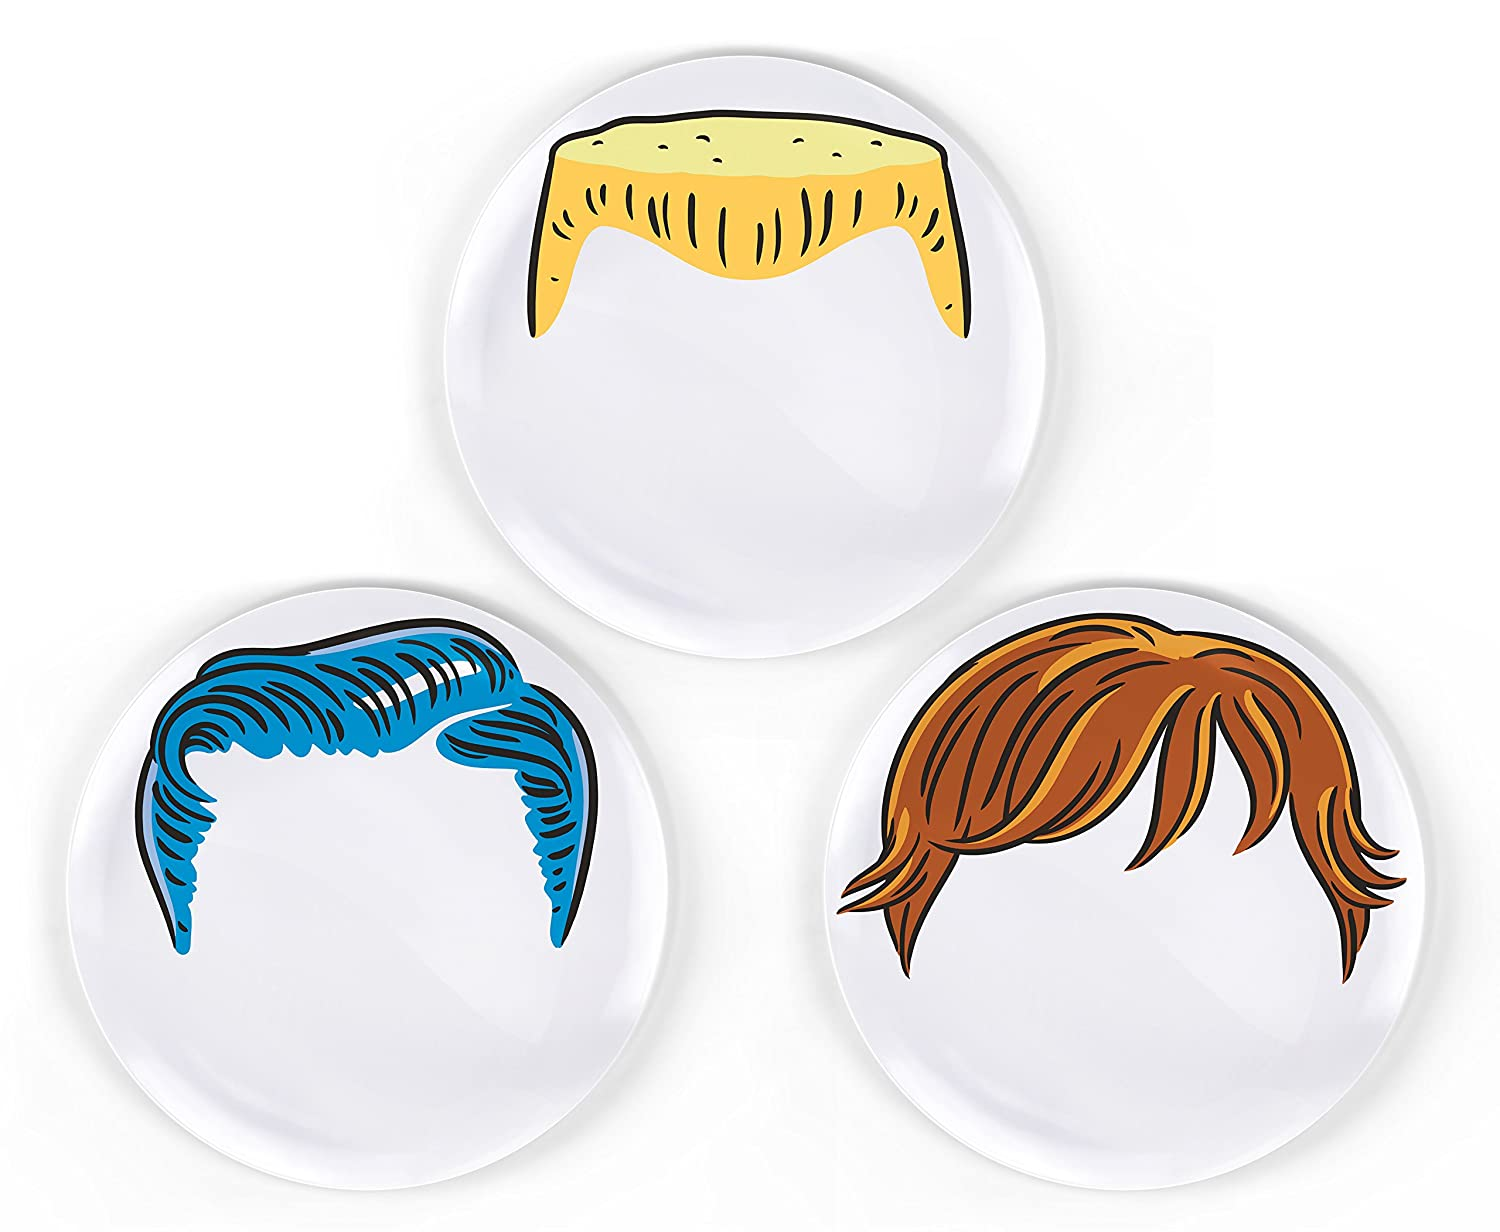 Amazon.com | Fred DINNER DOu0027S Boyu0027s Hairstyle Dinner Plates Set of 3 Childrens Party Plates Accent Plates  sc 1 st  Amazon.com & Amazon.com | Fred DINNER DOu0027S Boyu0027s Hairstyle Dinner Plates Set of ...